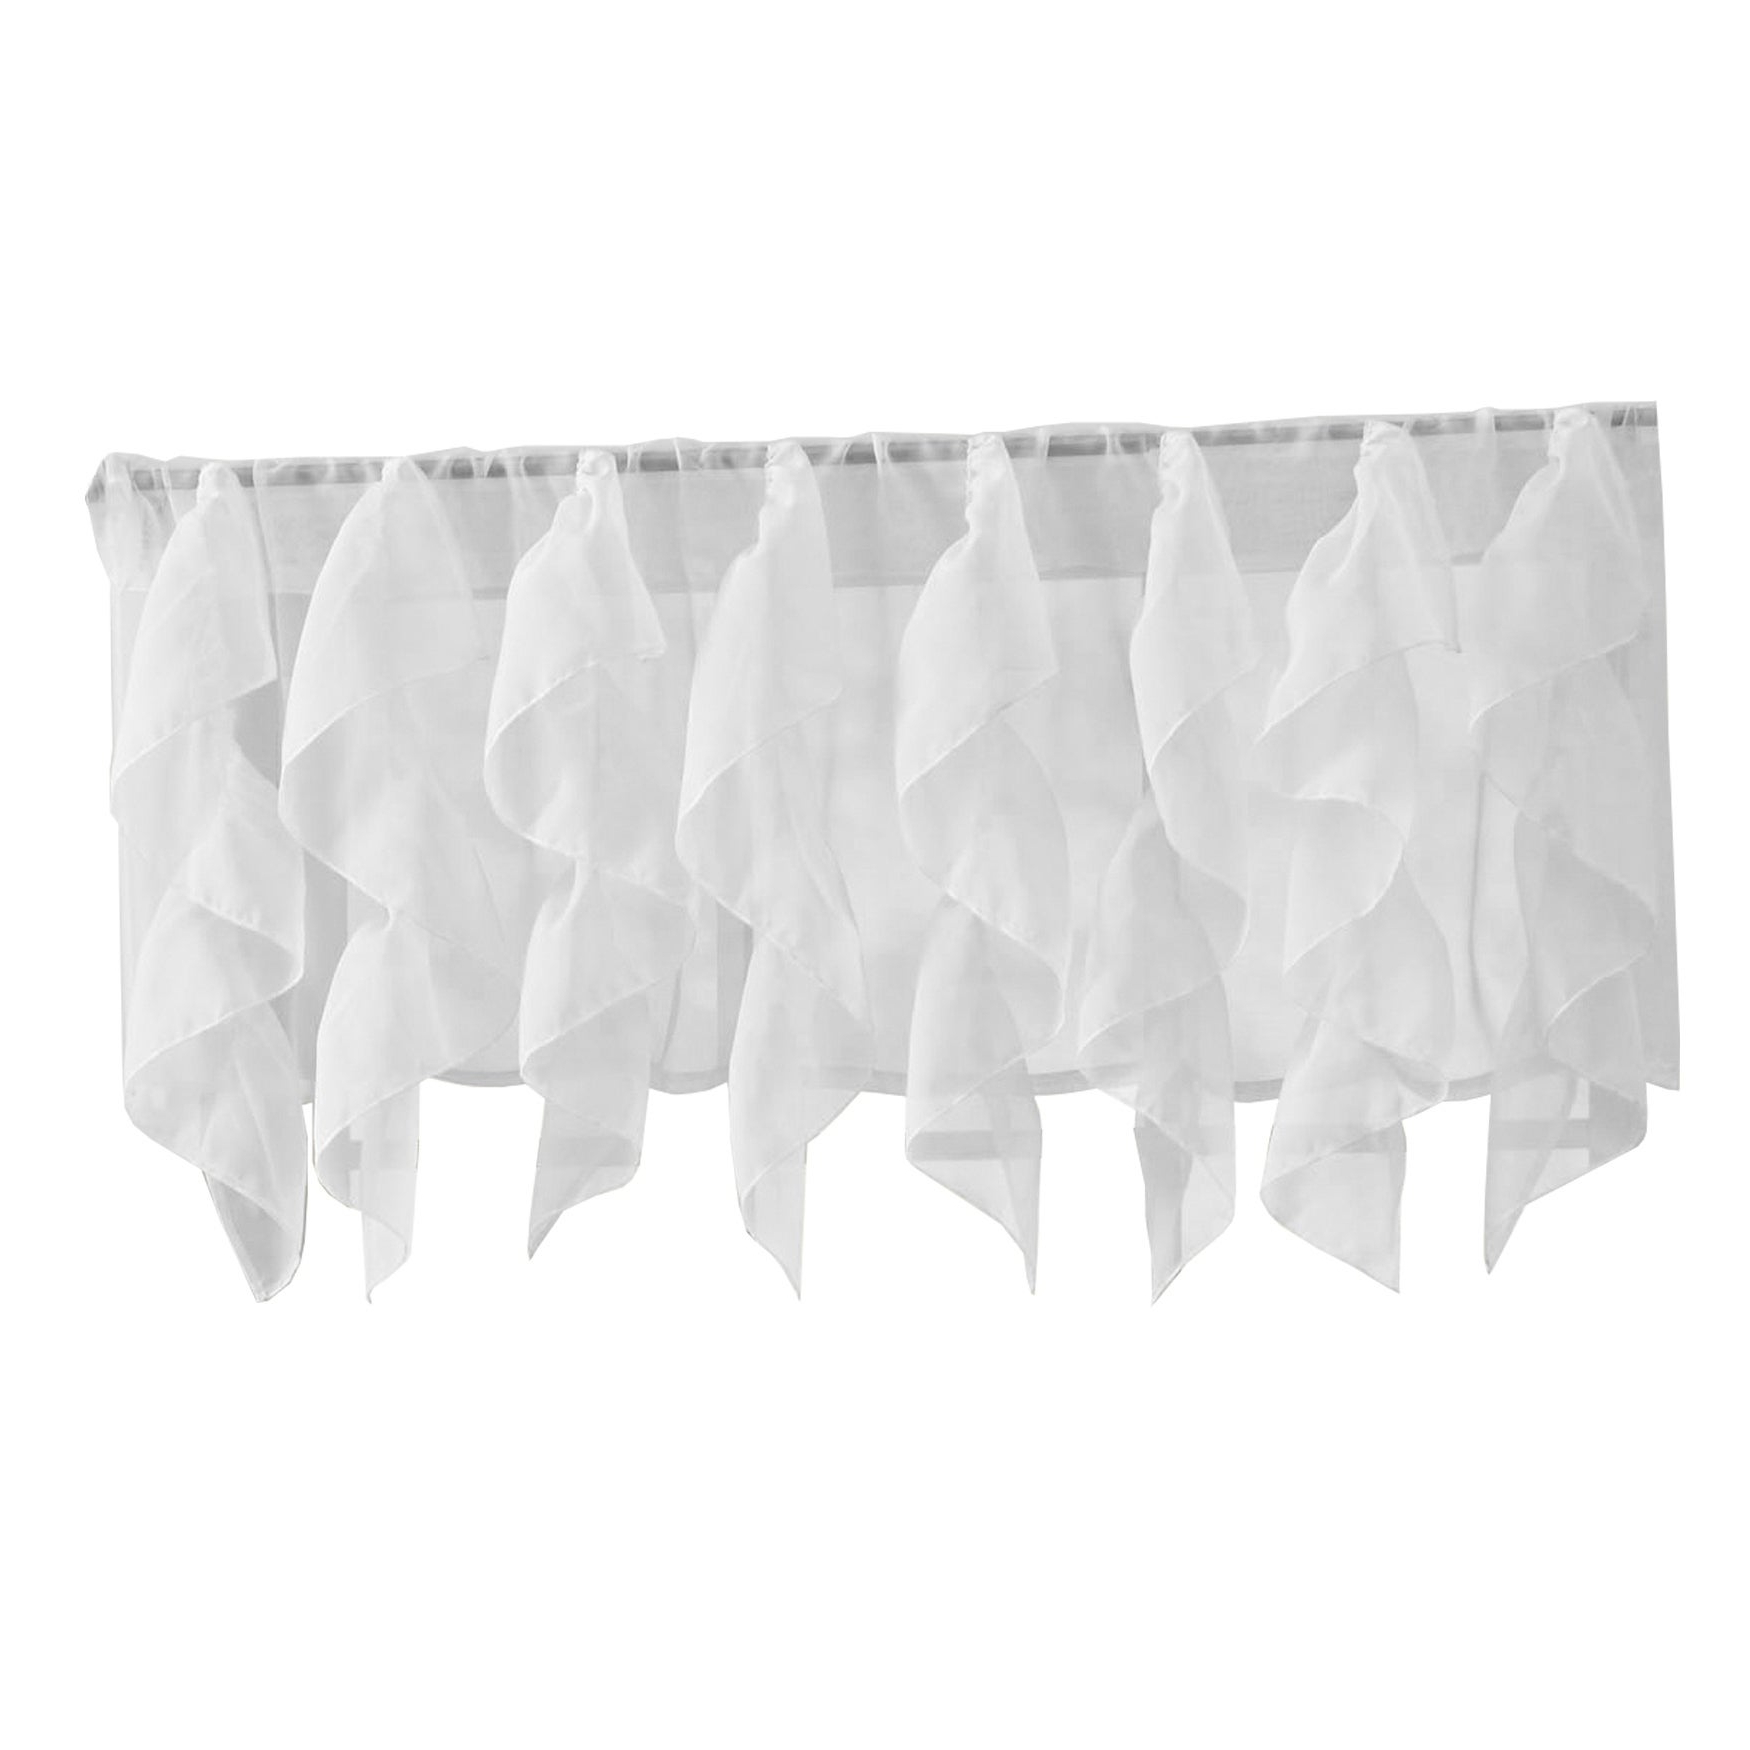 Favorite Maize Vertical Ruffled Waterfall Valance And Curtain Tiers With Regard To Sweet Home Collection Mint Vertical Ruffled Waterfall Valance And Curtain Tiers (View 4 of 20)